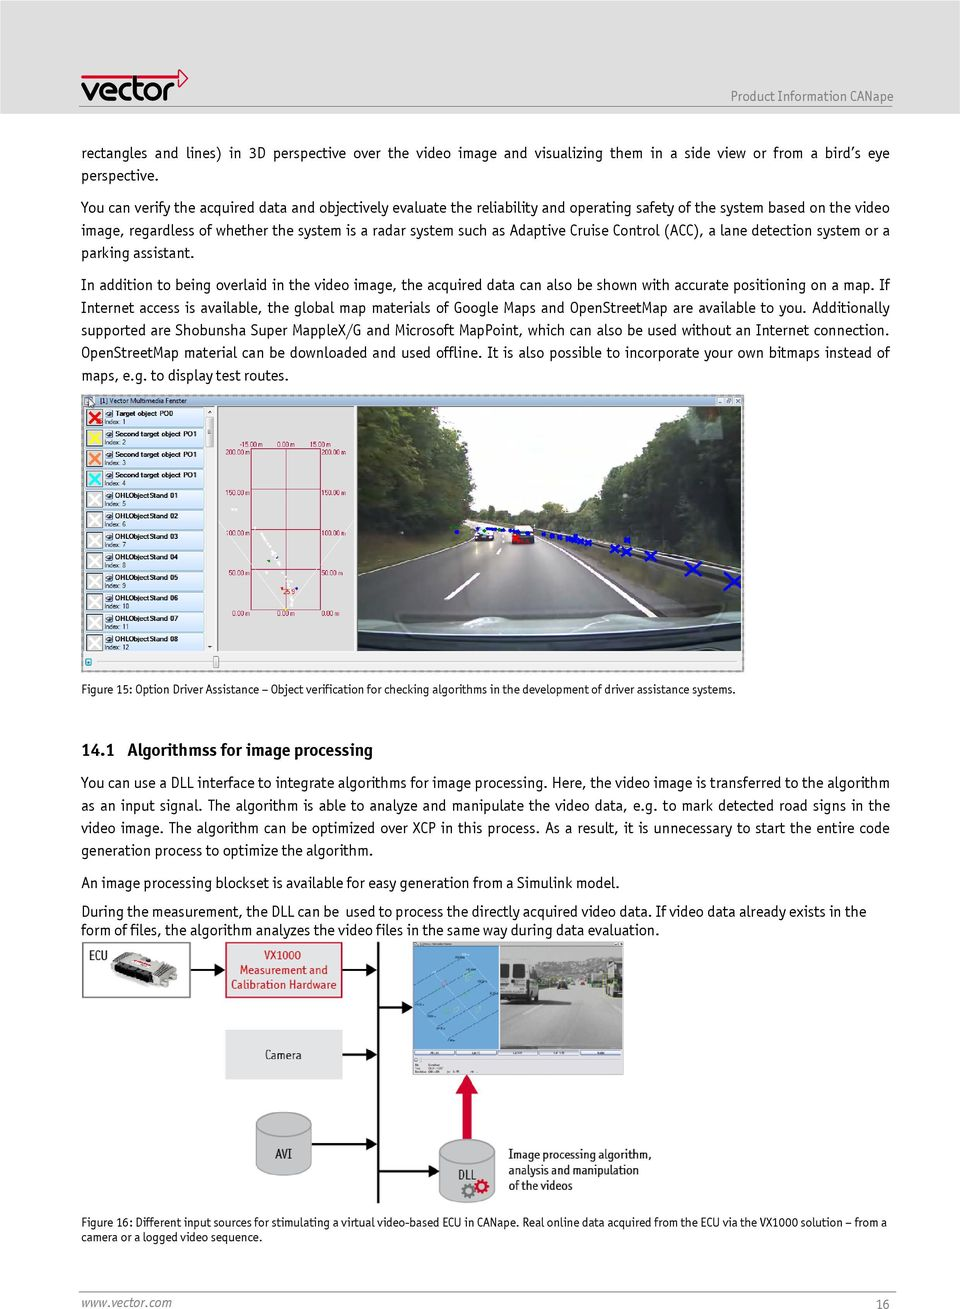 Adaptive Cruise Control (ACC), a lane detection system or a parking assistant. In addition to being overlaid in the video image, the acquired data can also be shown with accurate positioning on a map.